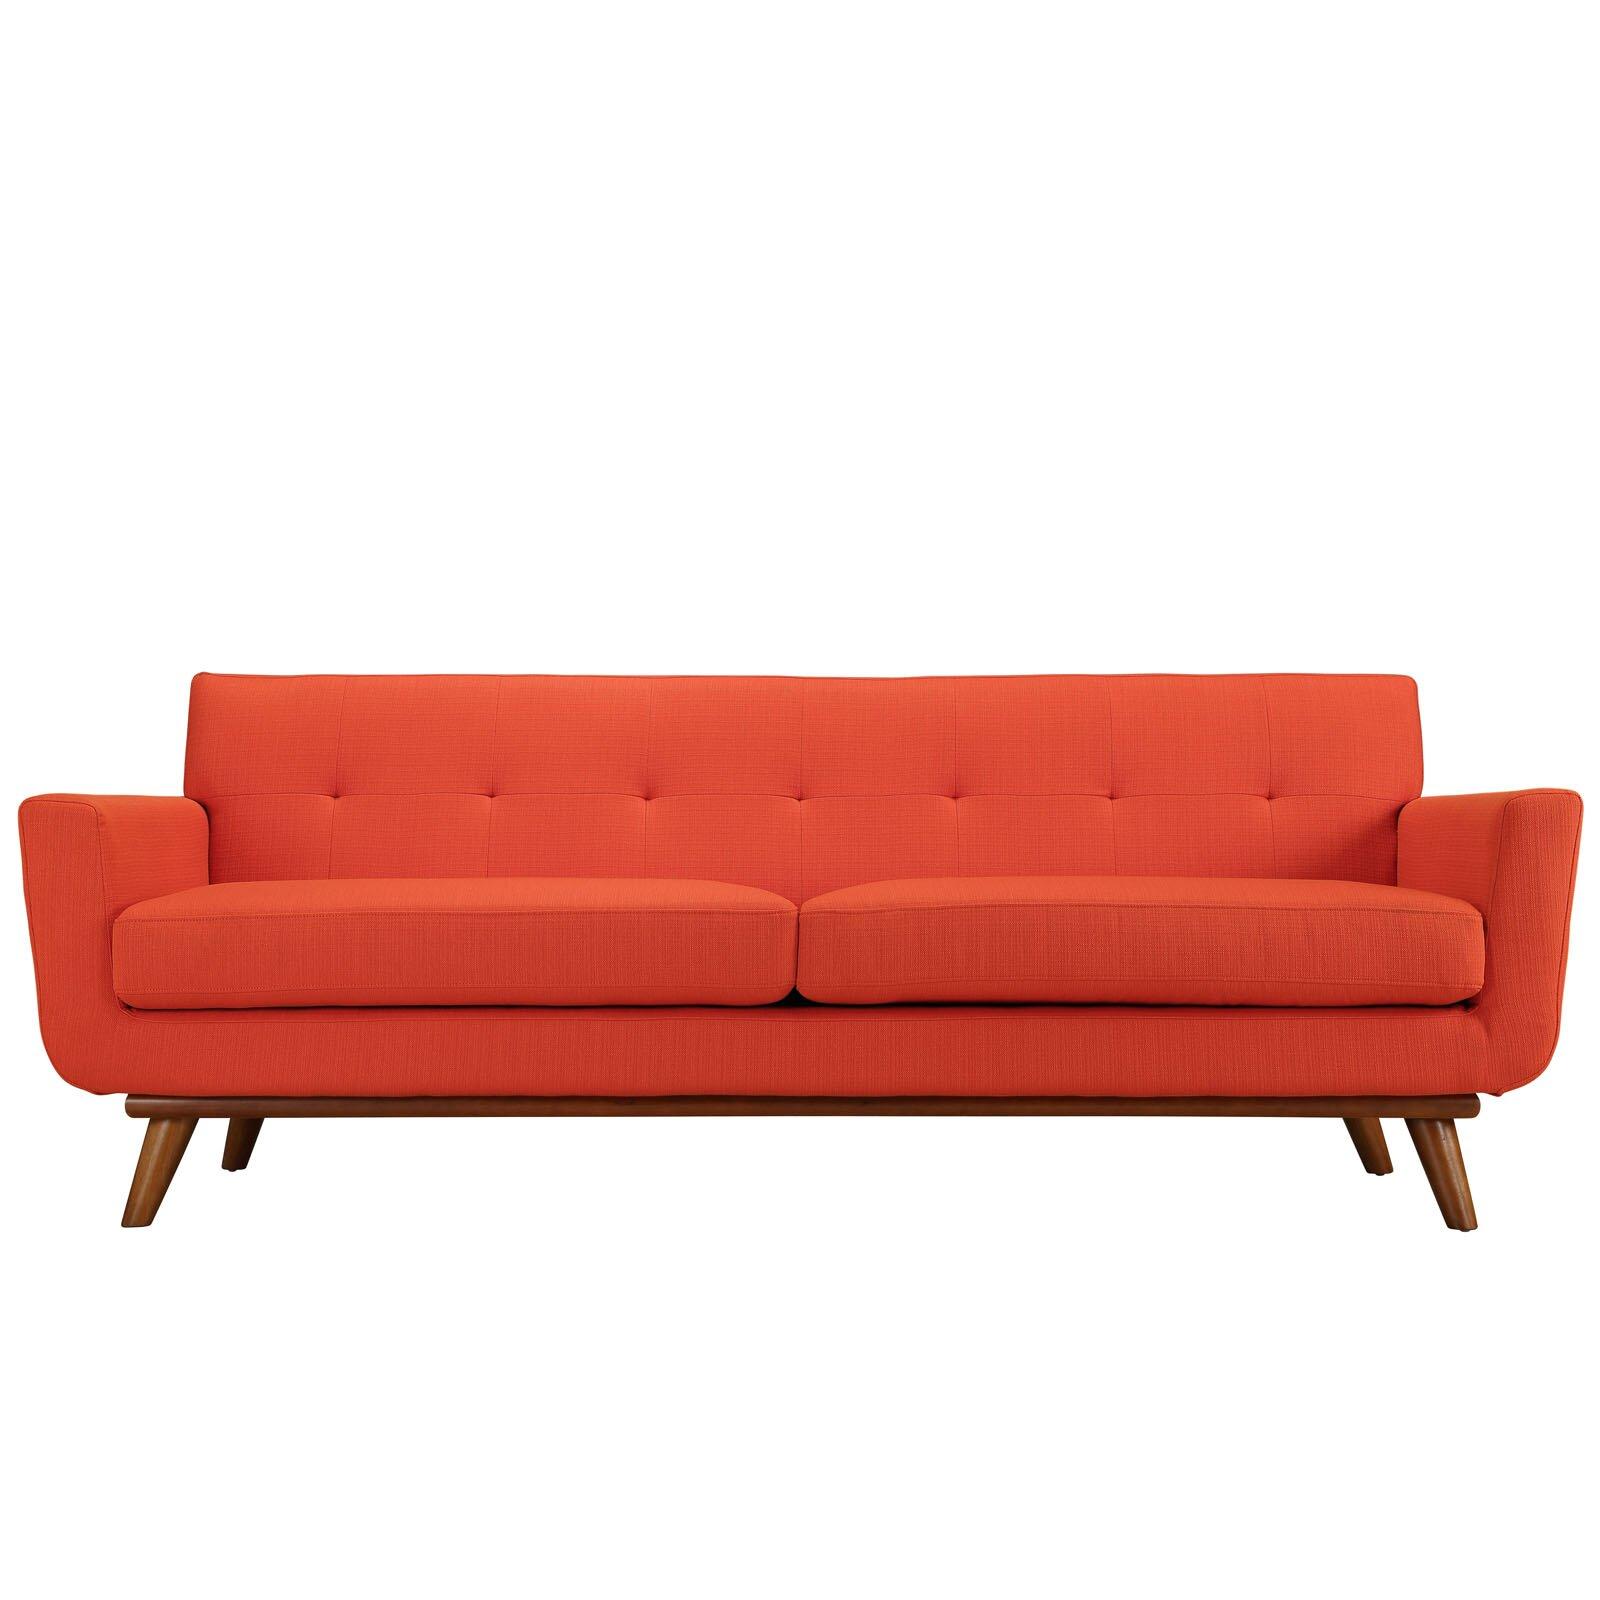 Corrigan studio saginaw upholstered sofa reviews wayfair for Best inexpensive sofa